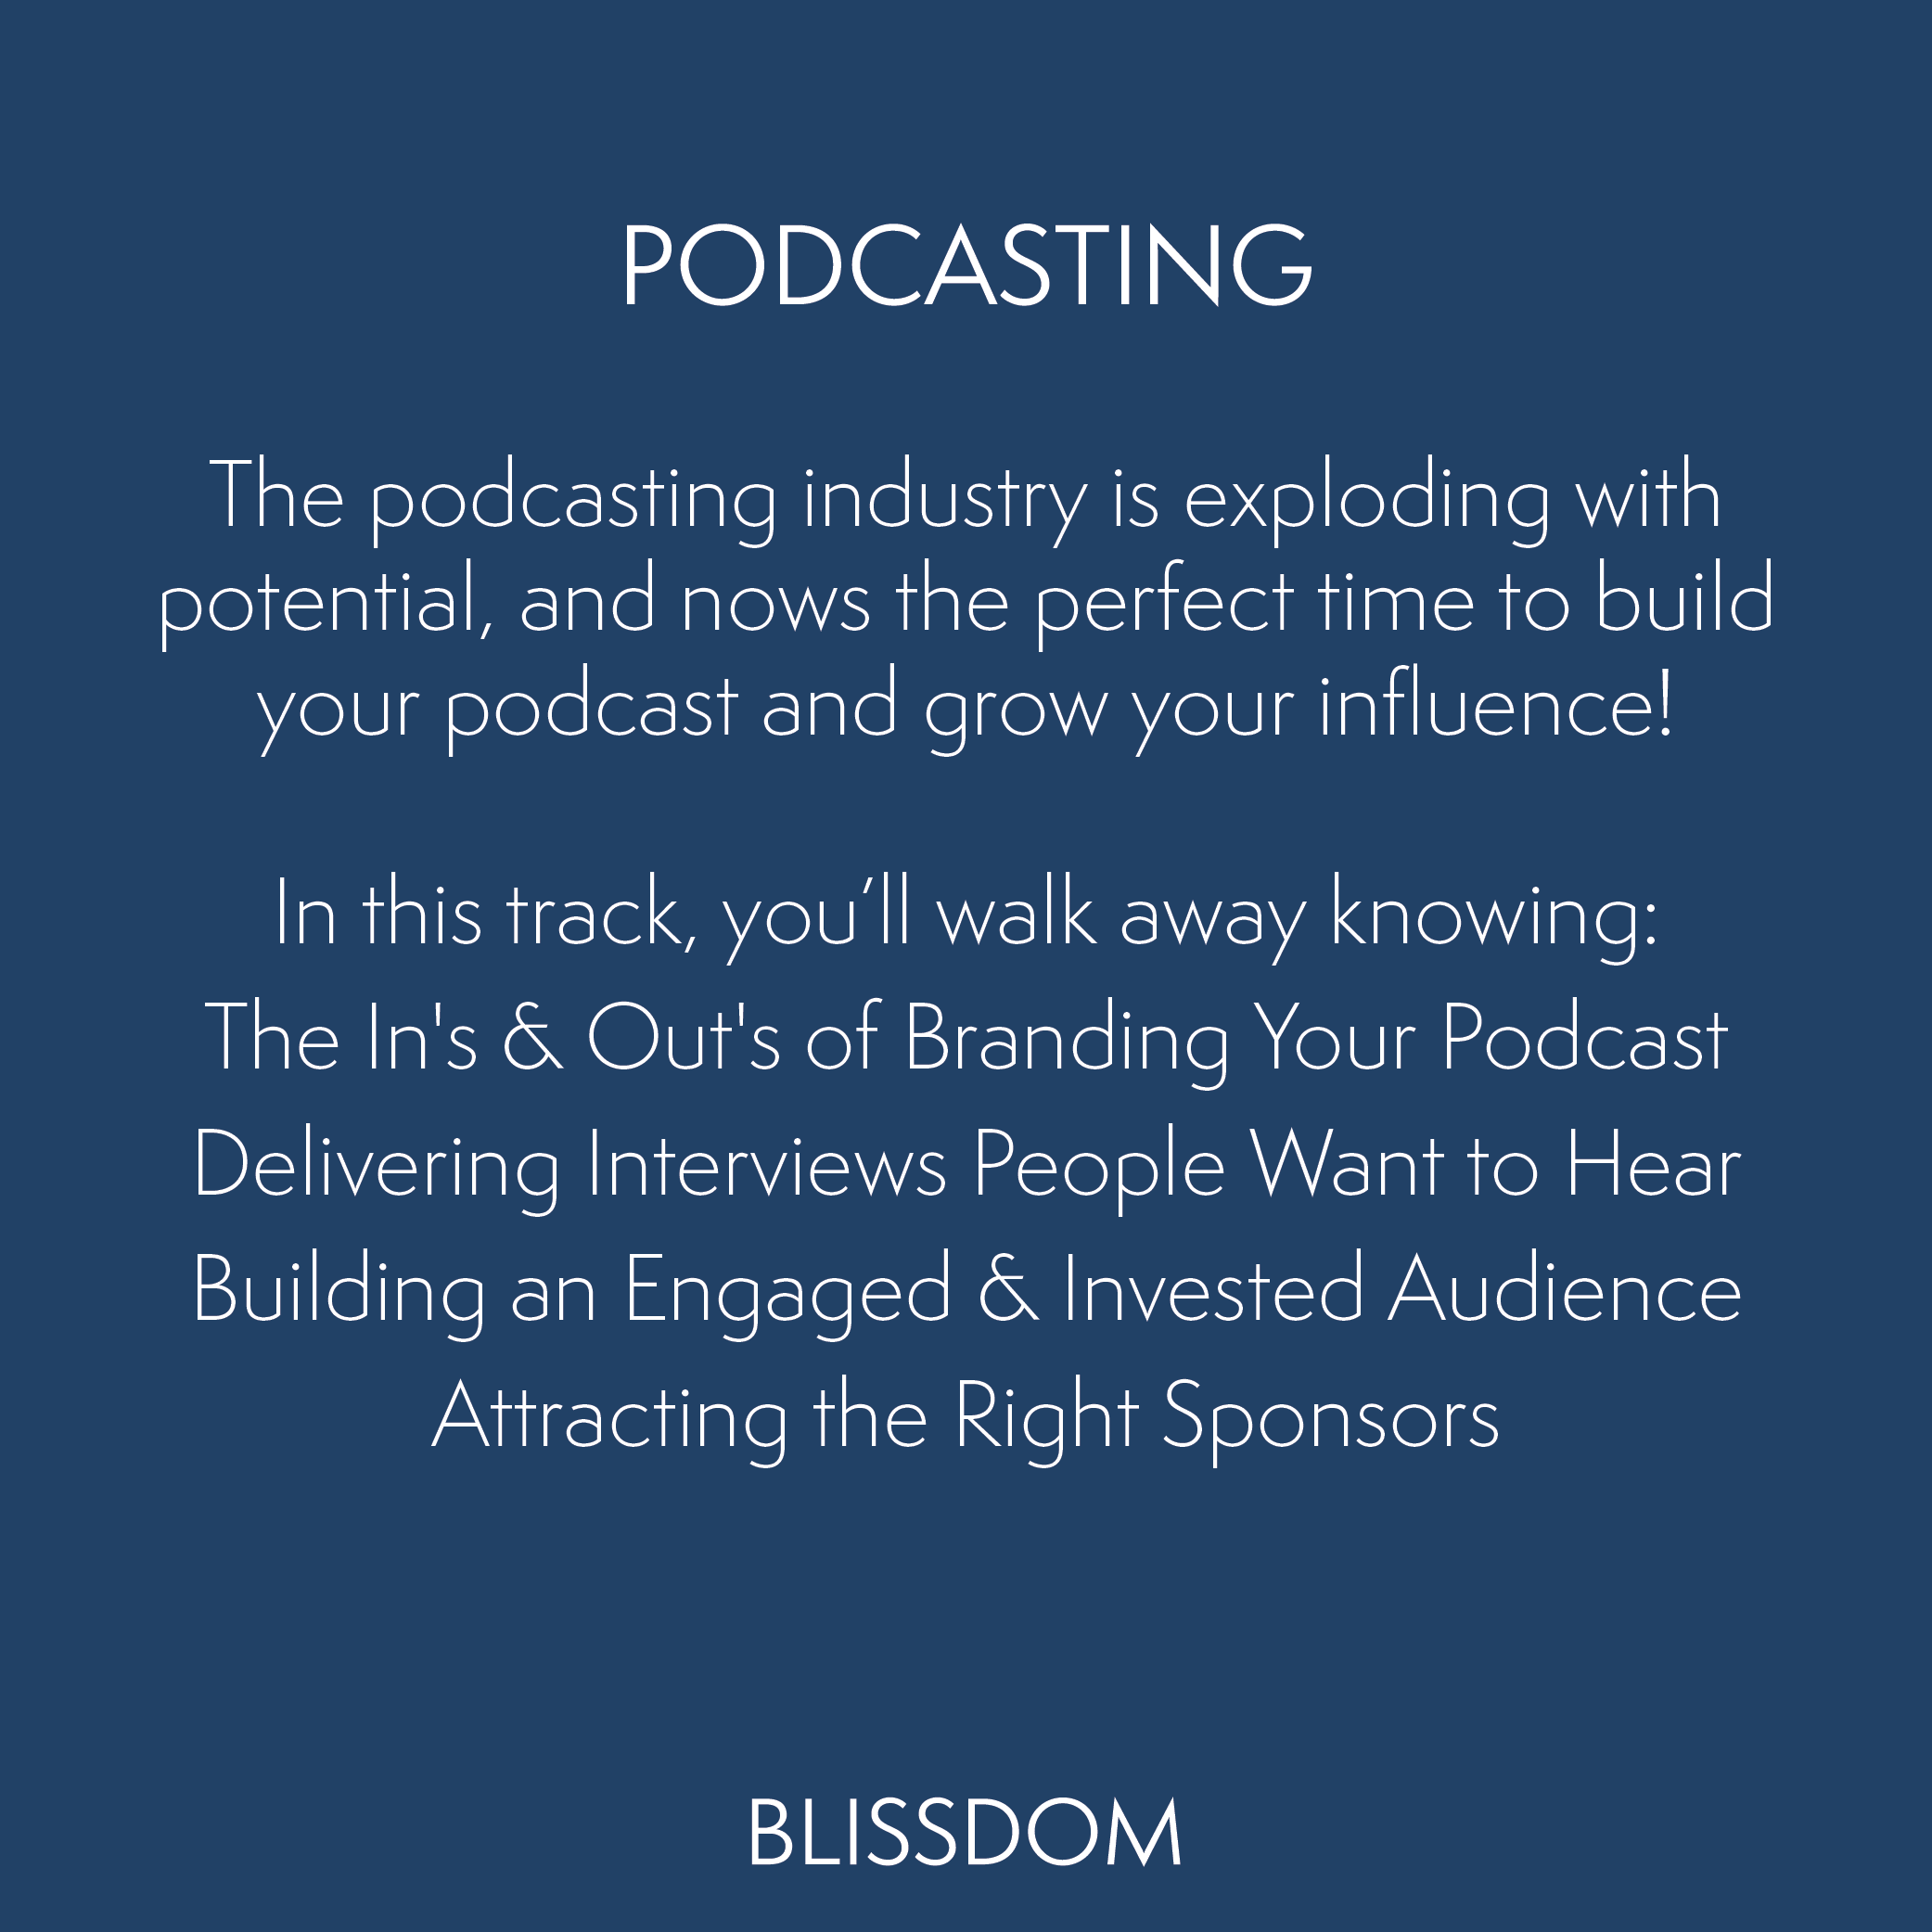 Podcasting-Blissdom-Track.png